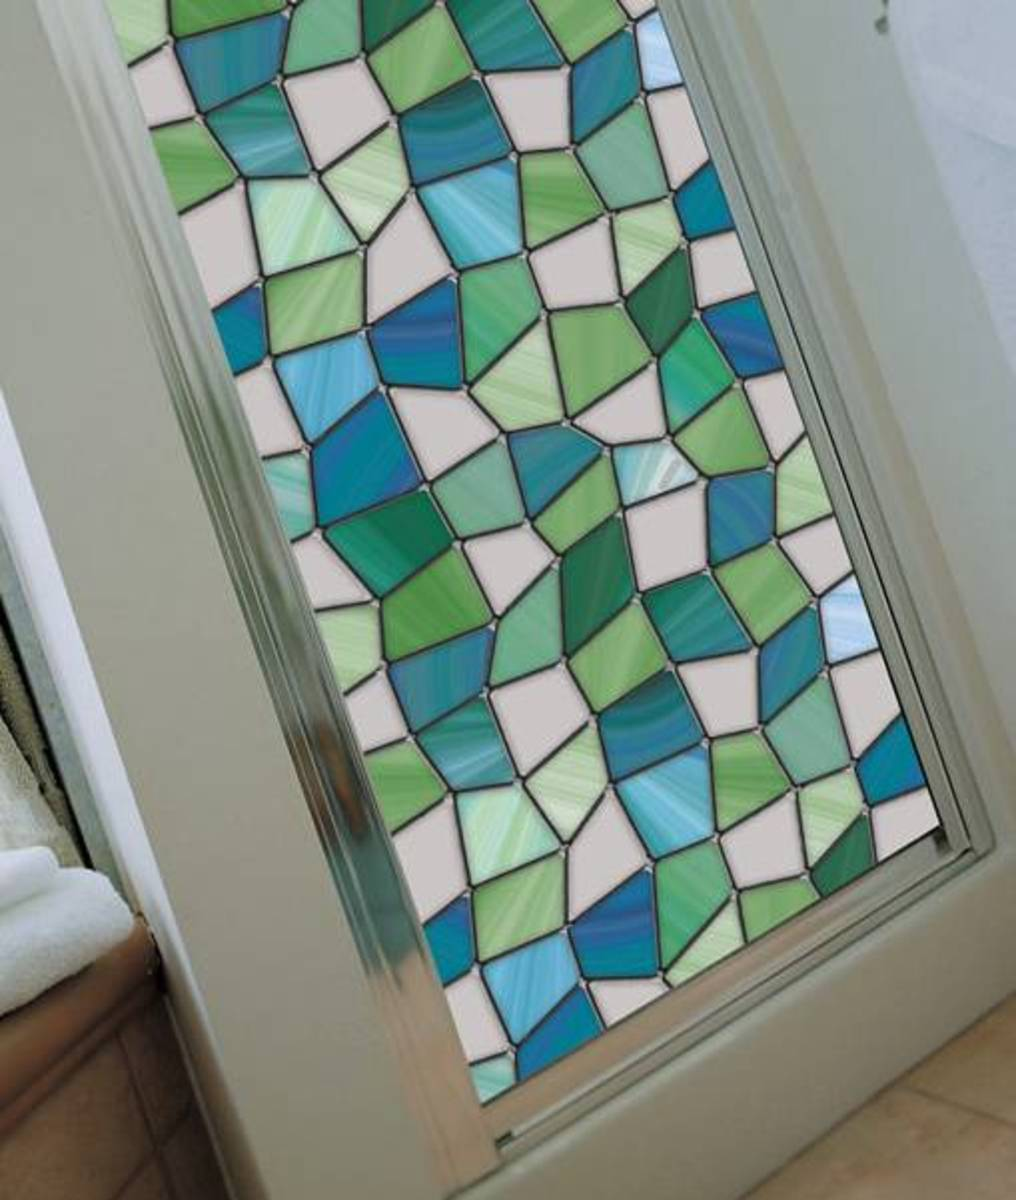 Stained glass paint kits or decorative window film is a great way to spiff up your kitchen cabinets.